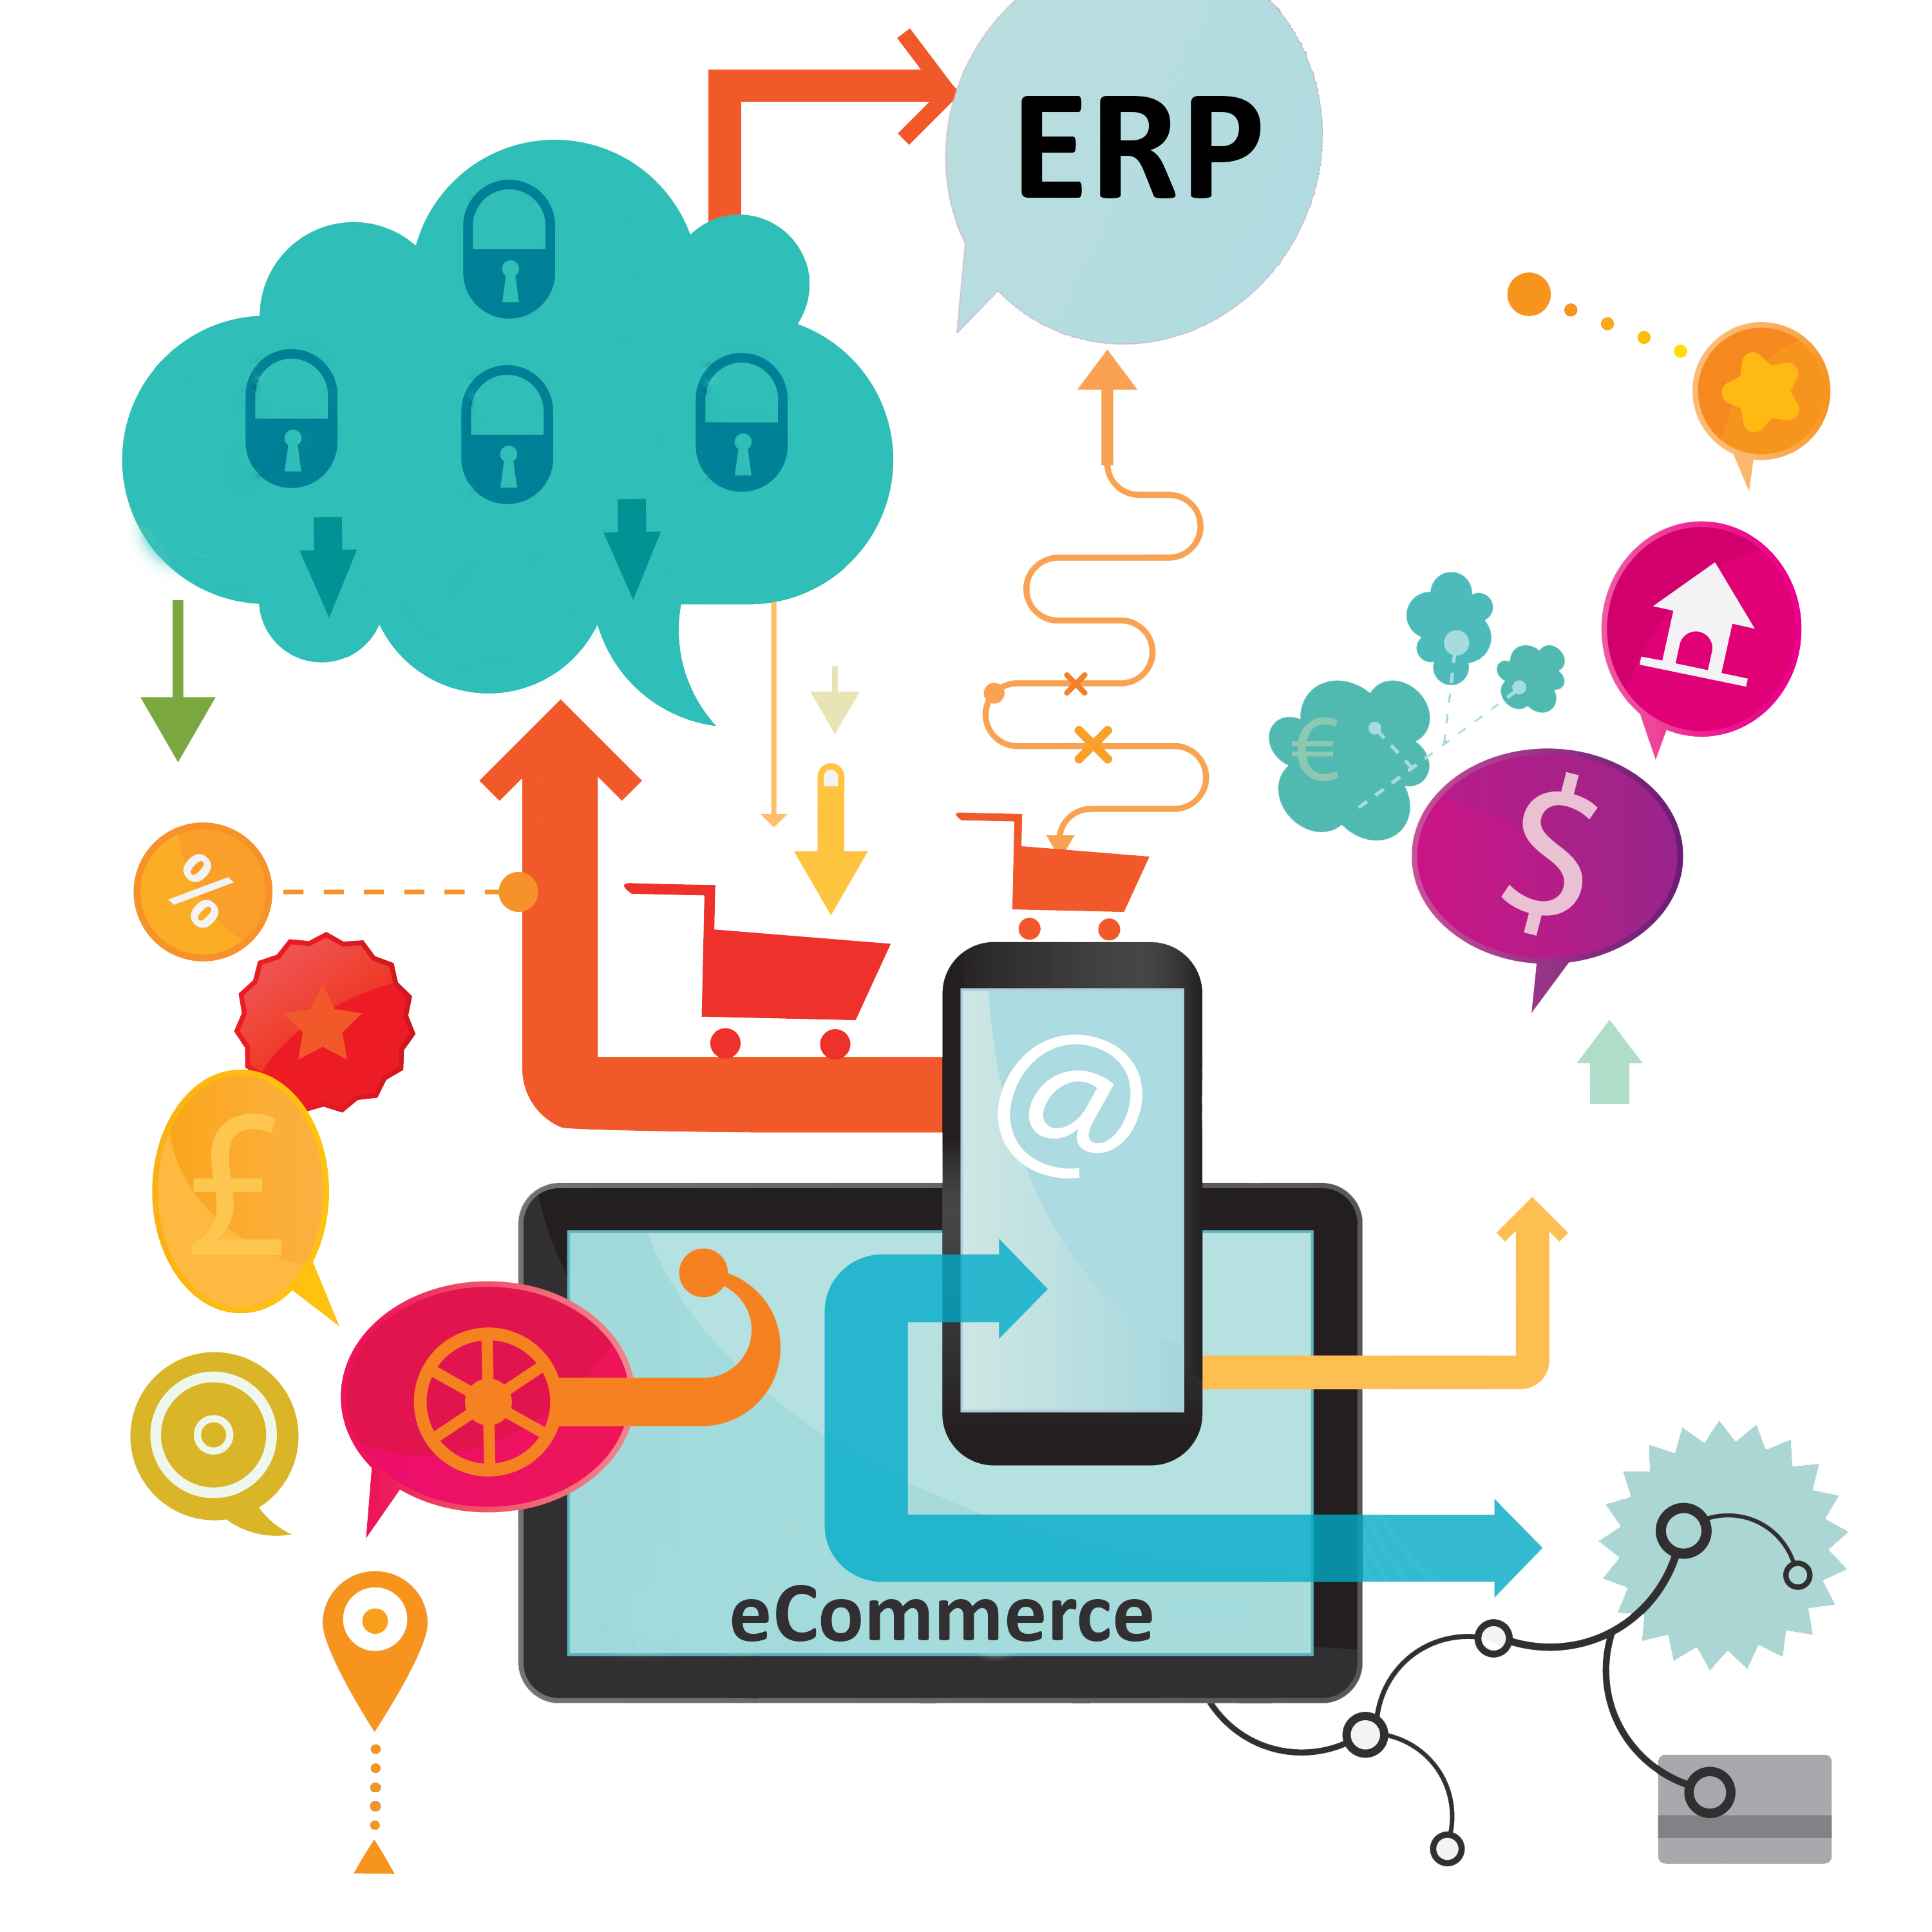 erp-ecommerce-integartion